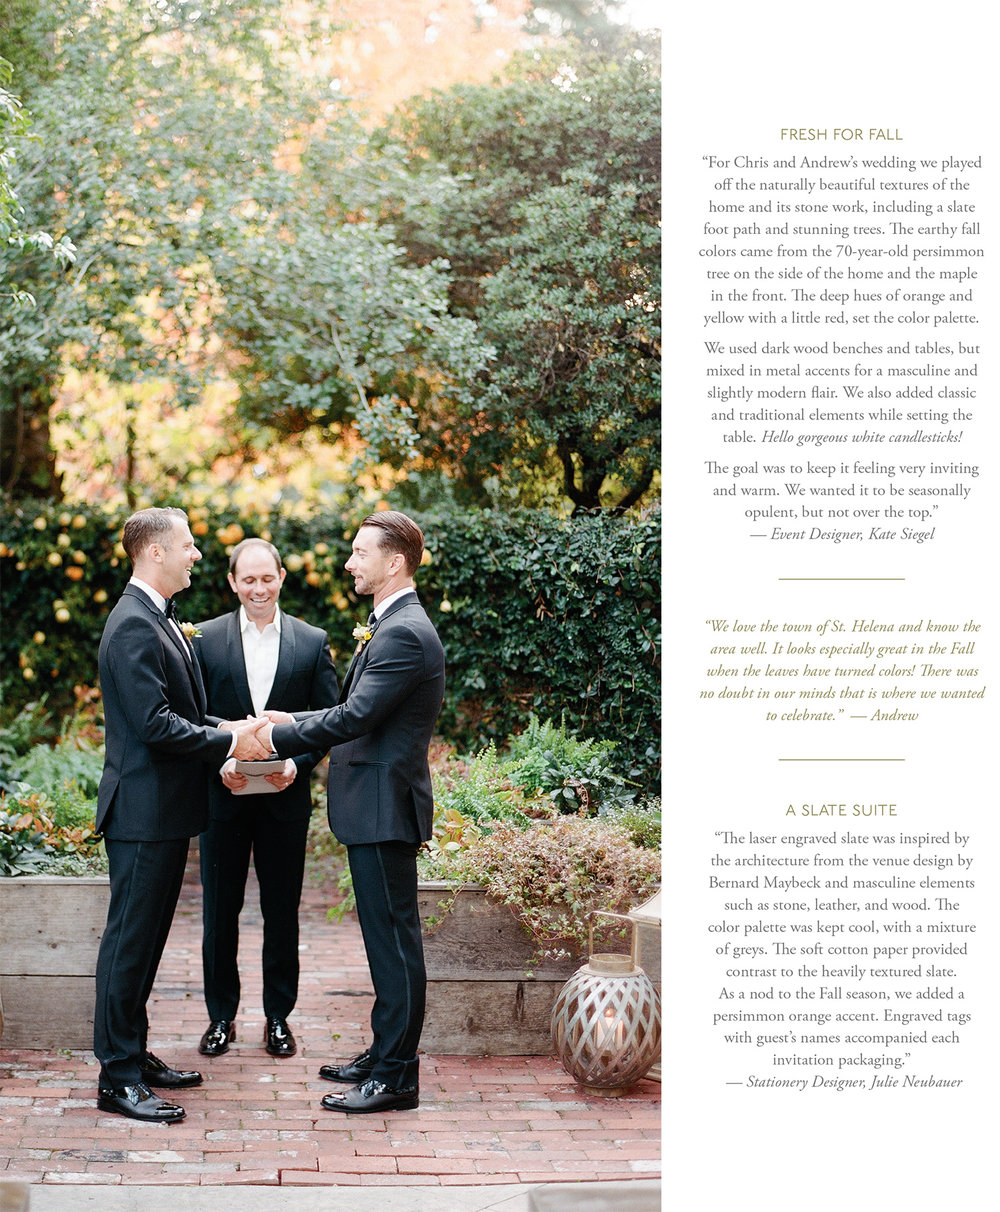 Chris & Andrew's St. Helena ceremony, featured in Flutter Magazine; Sylvie Gil Photography